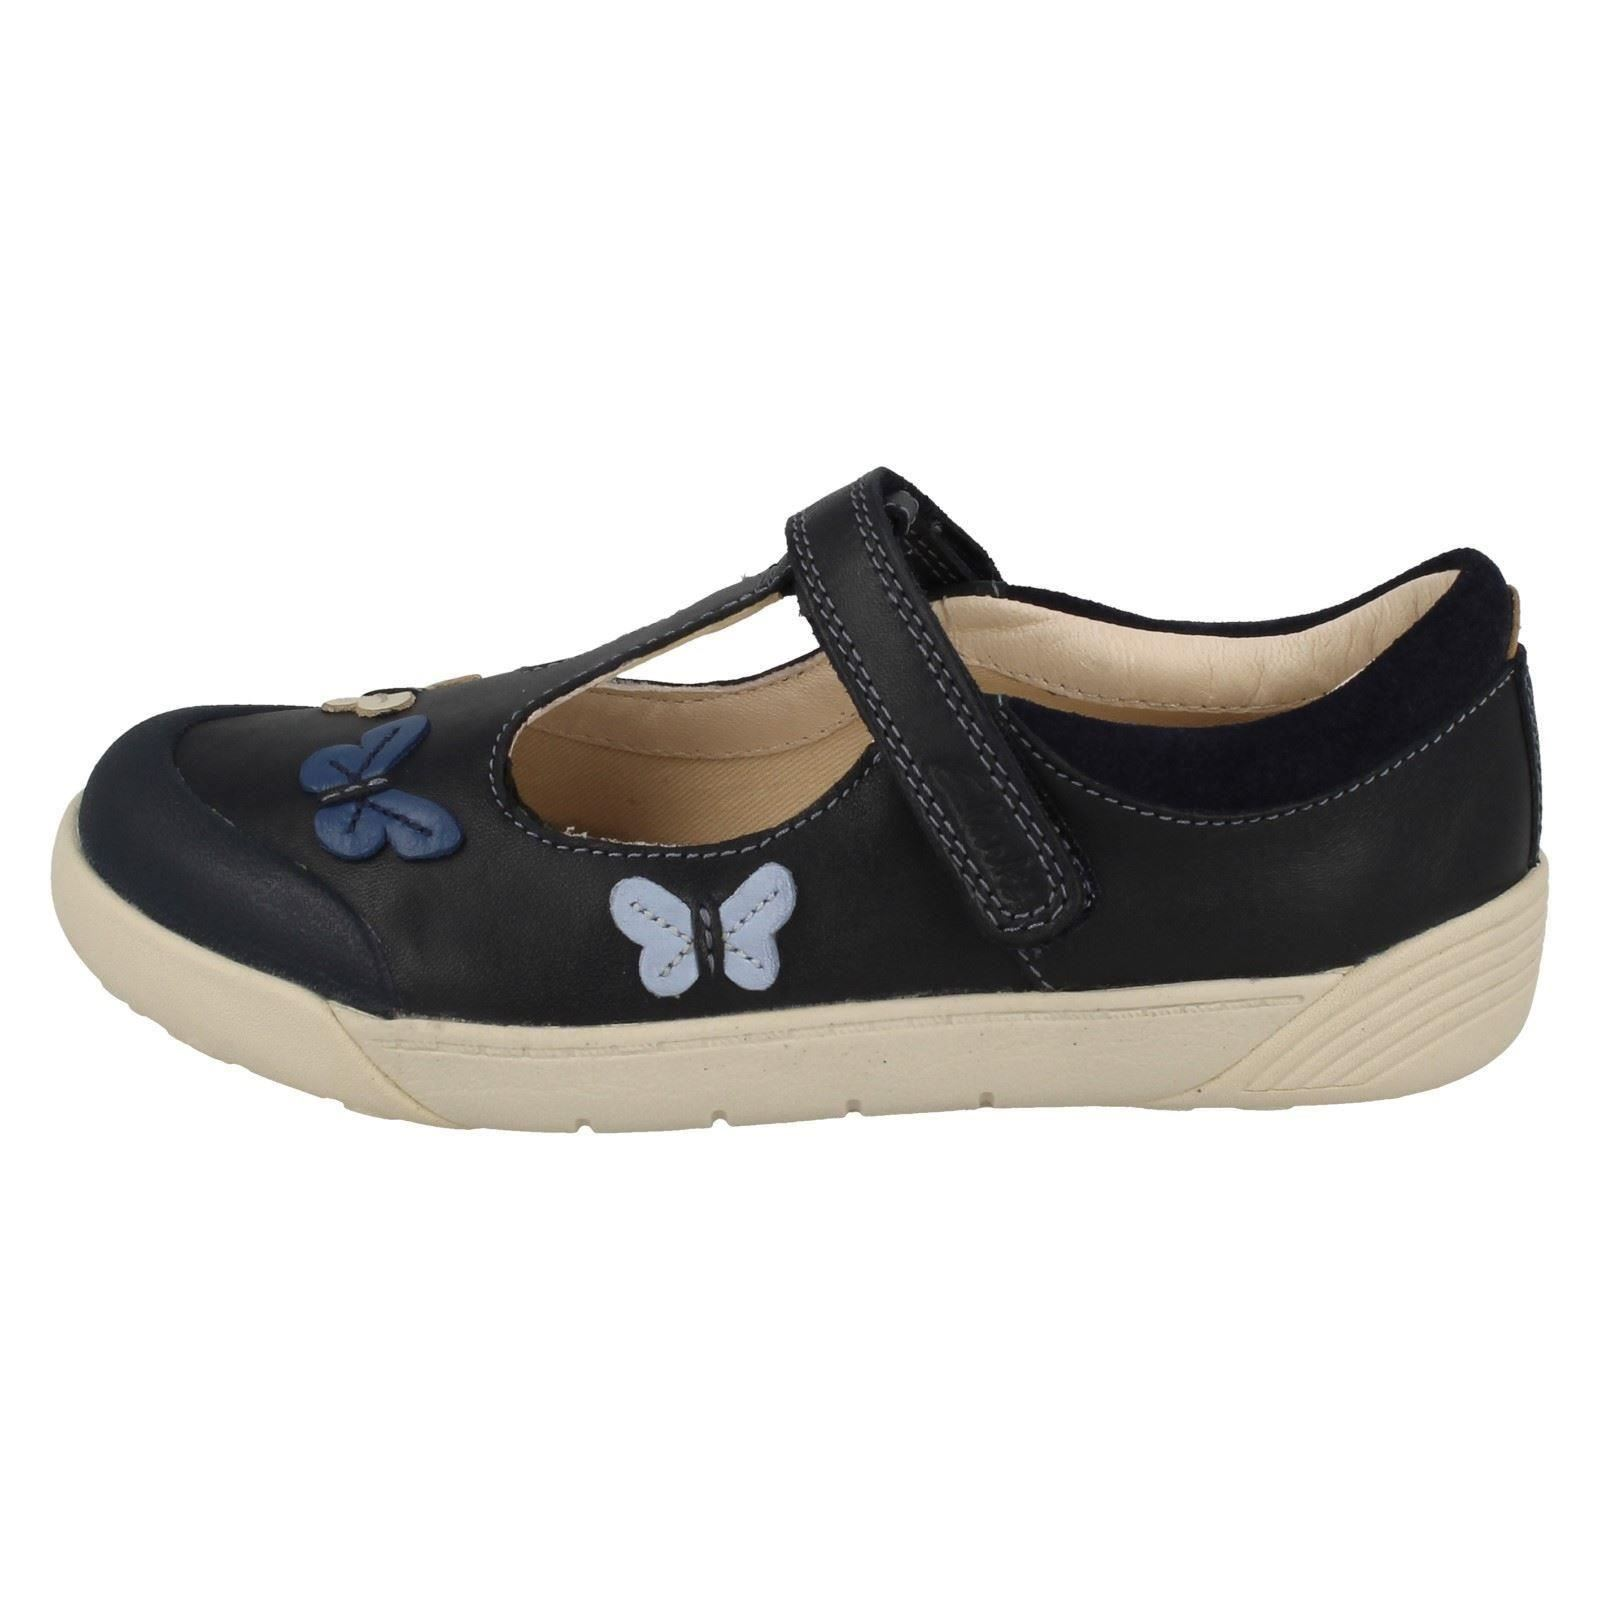 bar T Folk Clarks Navy Lil azul Flo Shoes Girls 7RwwEScxqU